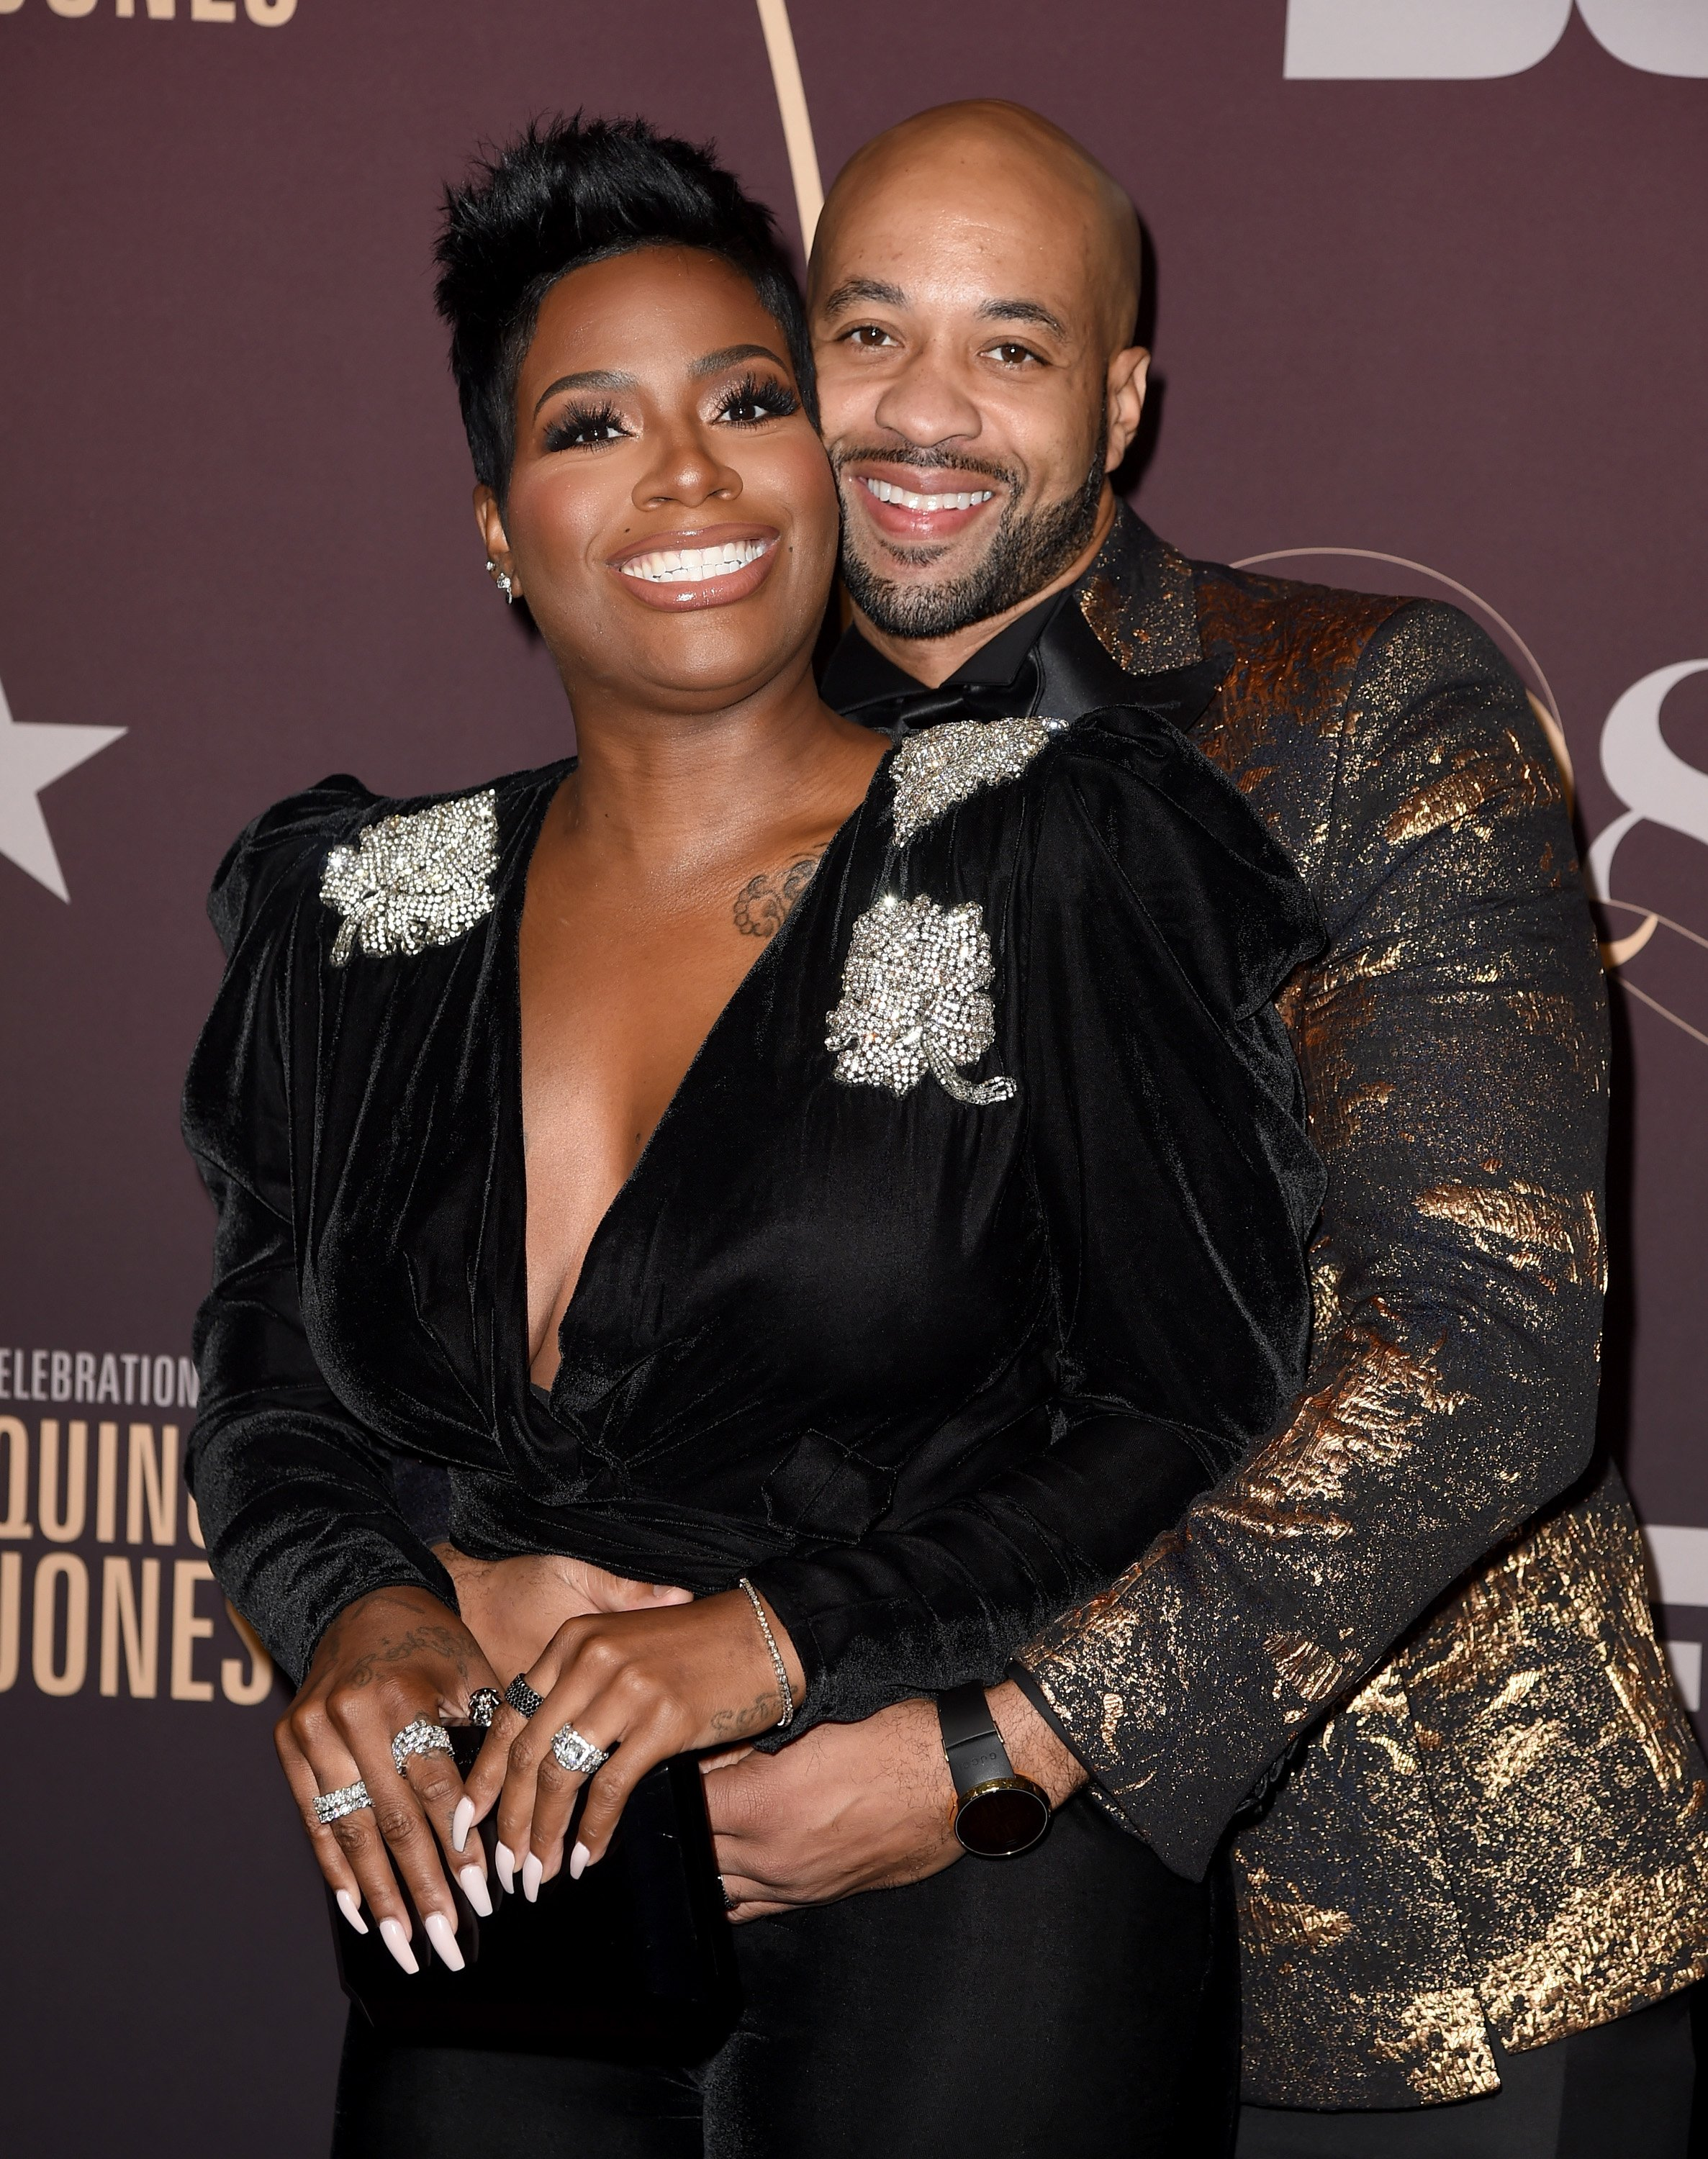 Fantasia Barrino and Kendall Taylor at the Q85: A Musical Celebration for Quincy Jones in Los Angeles, California, in September 201.   Photo: Getty Images.